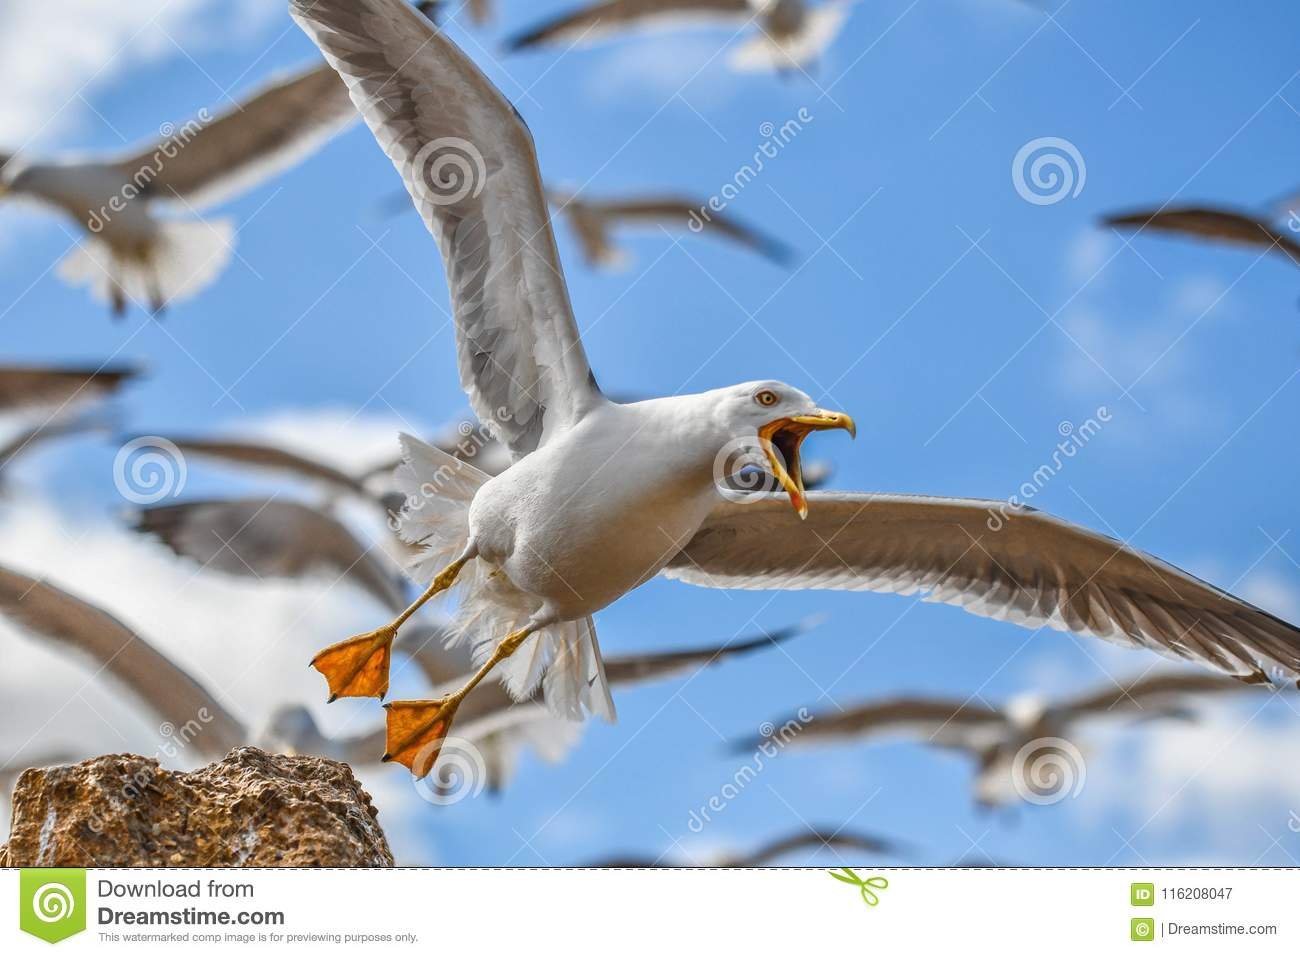 A close-up of a seagull bird with open beak flying with other birds on blue sky background.